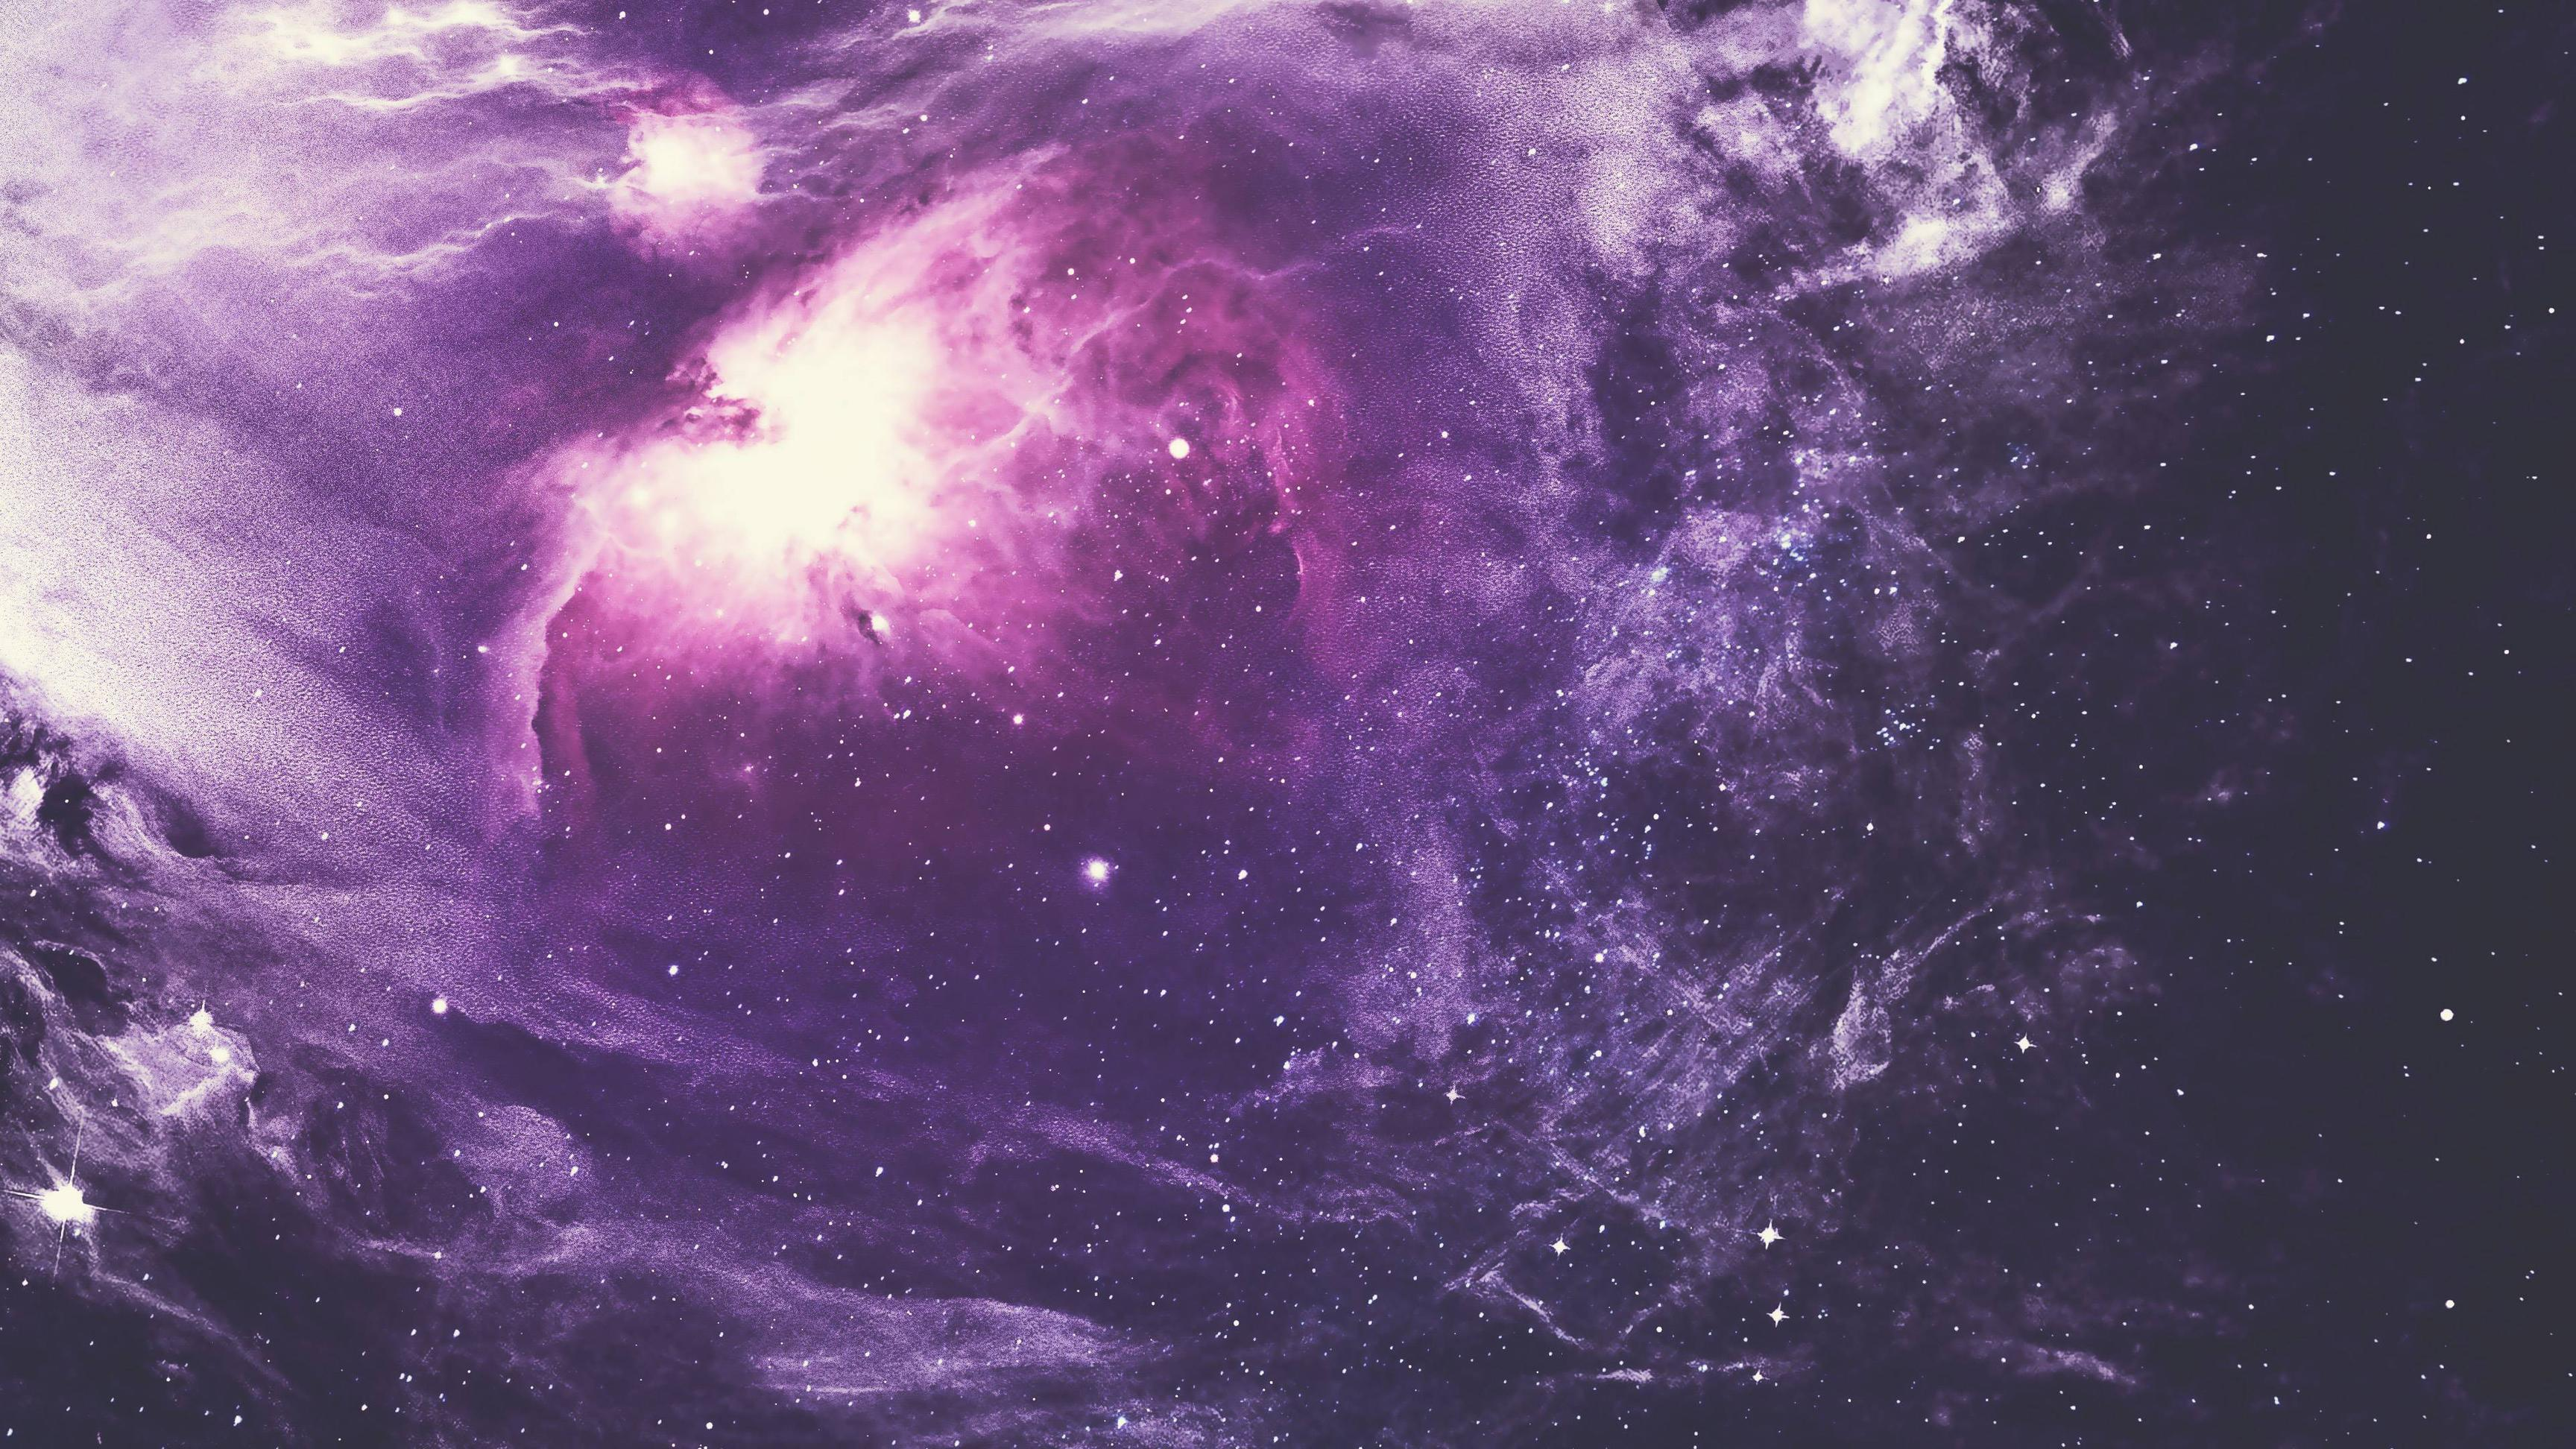 purple nebula 4k, hd digital universe, 4k wallpapers, images